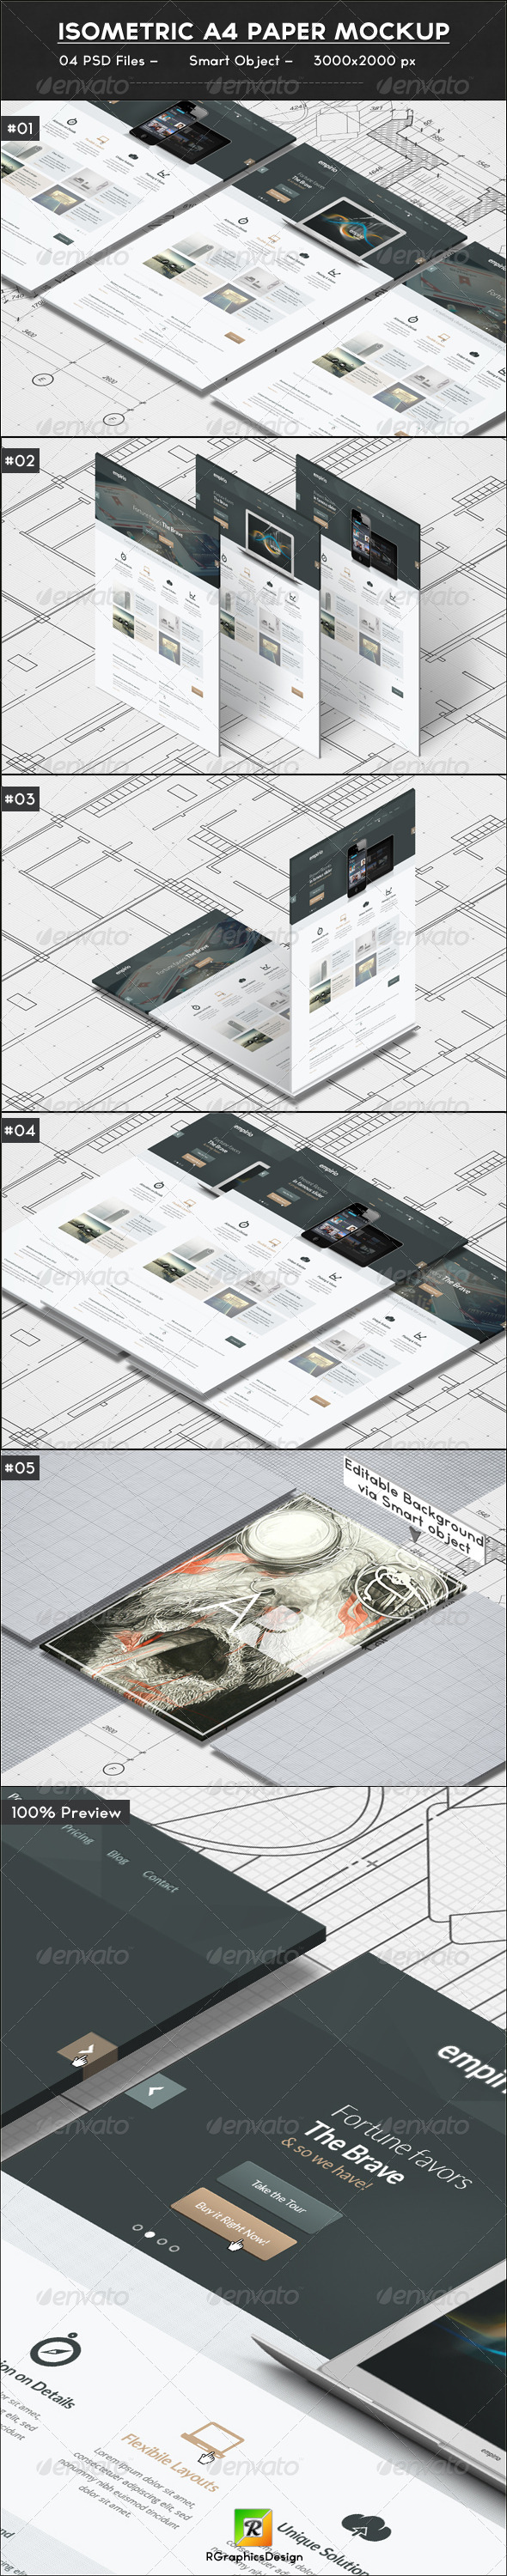 GraphicRiver Isometric A4 Paper Mockup 6964794